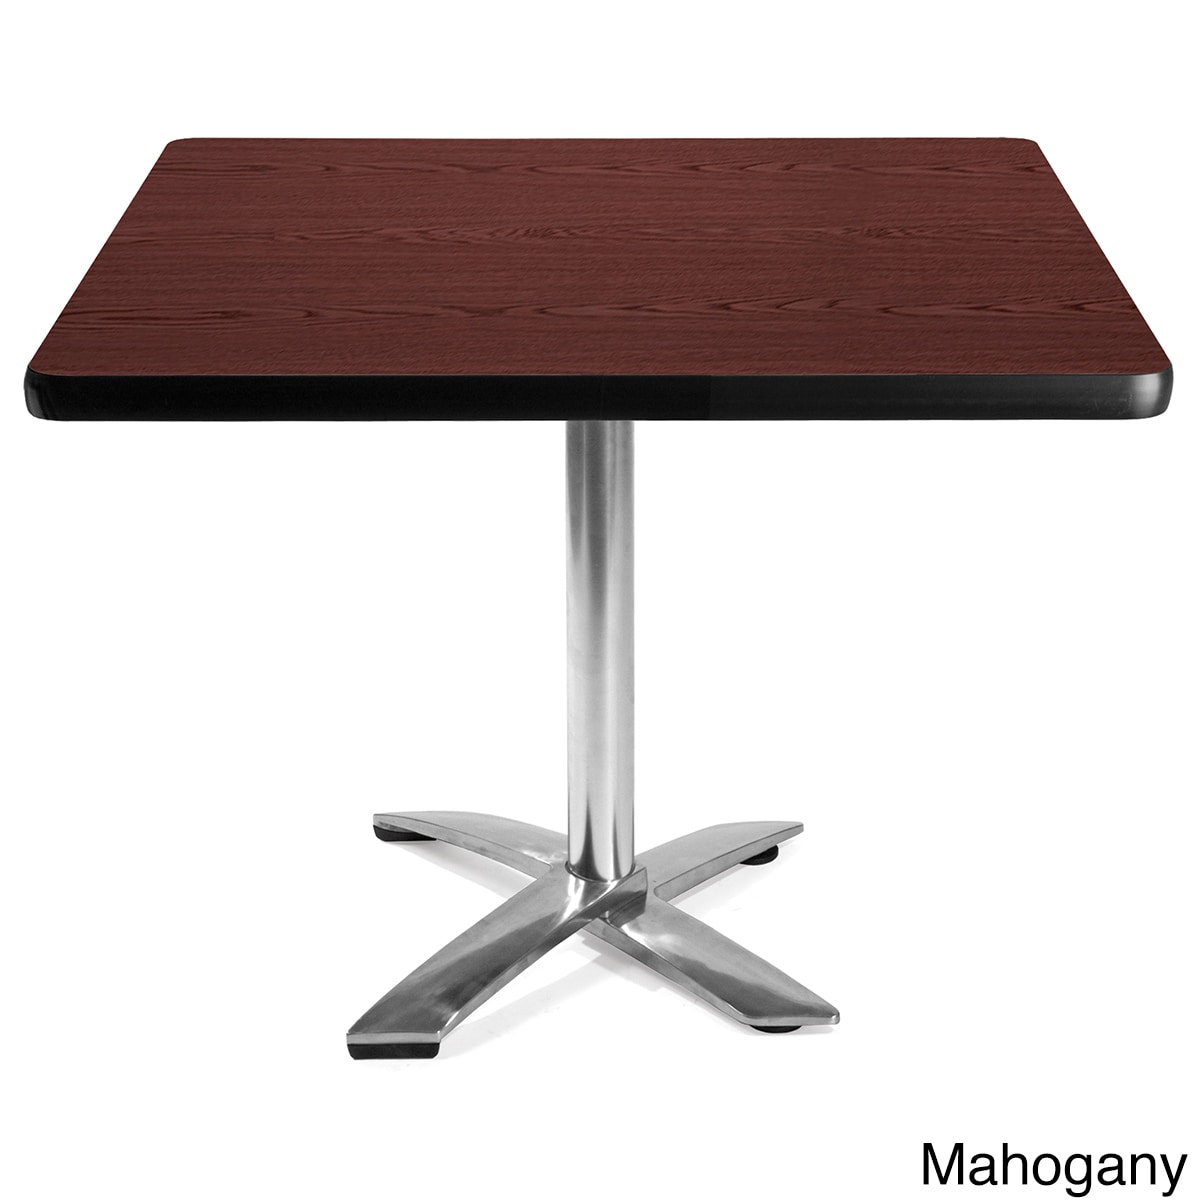 OFM 36-inch Square Flip-Top Laminate Table with Chrome Ba...